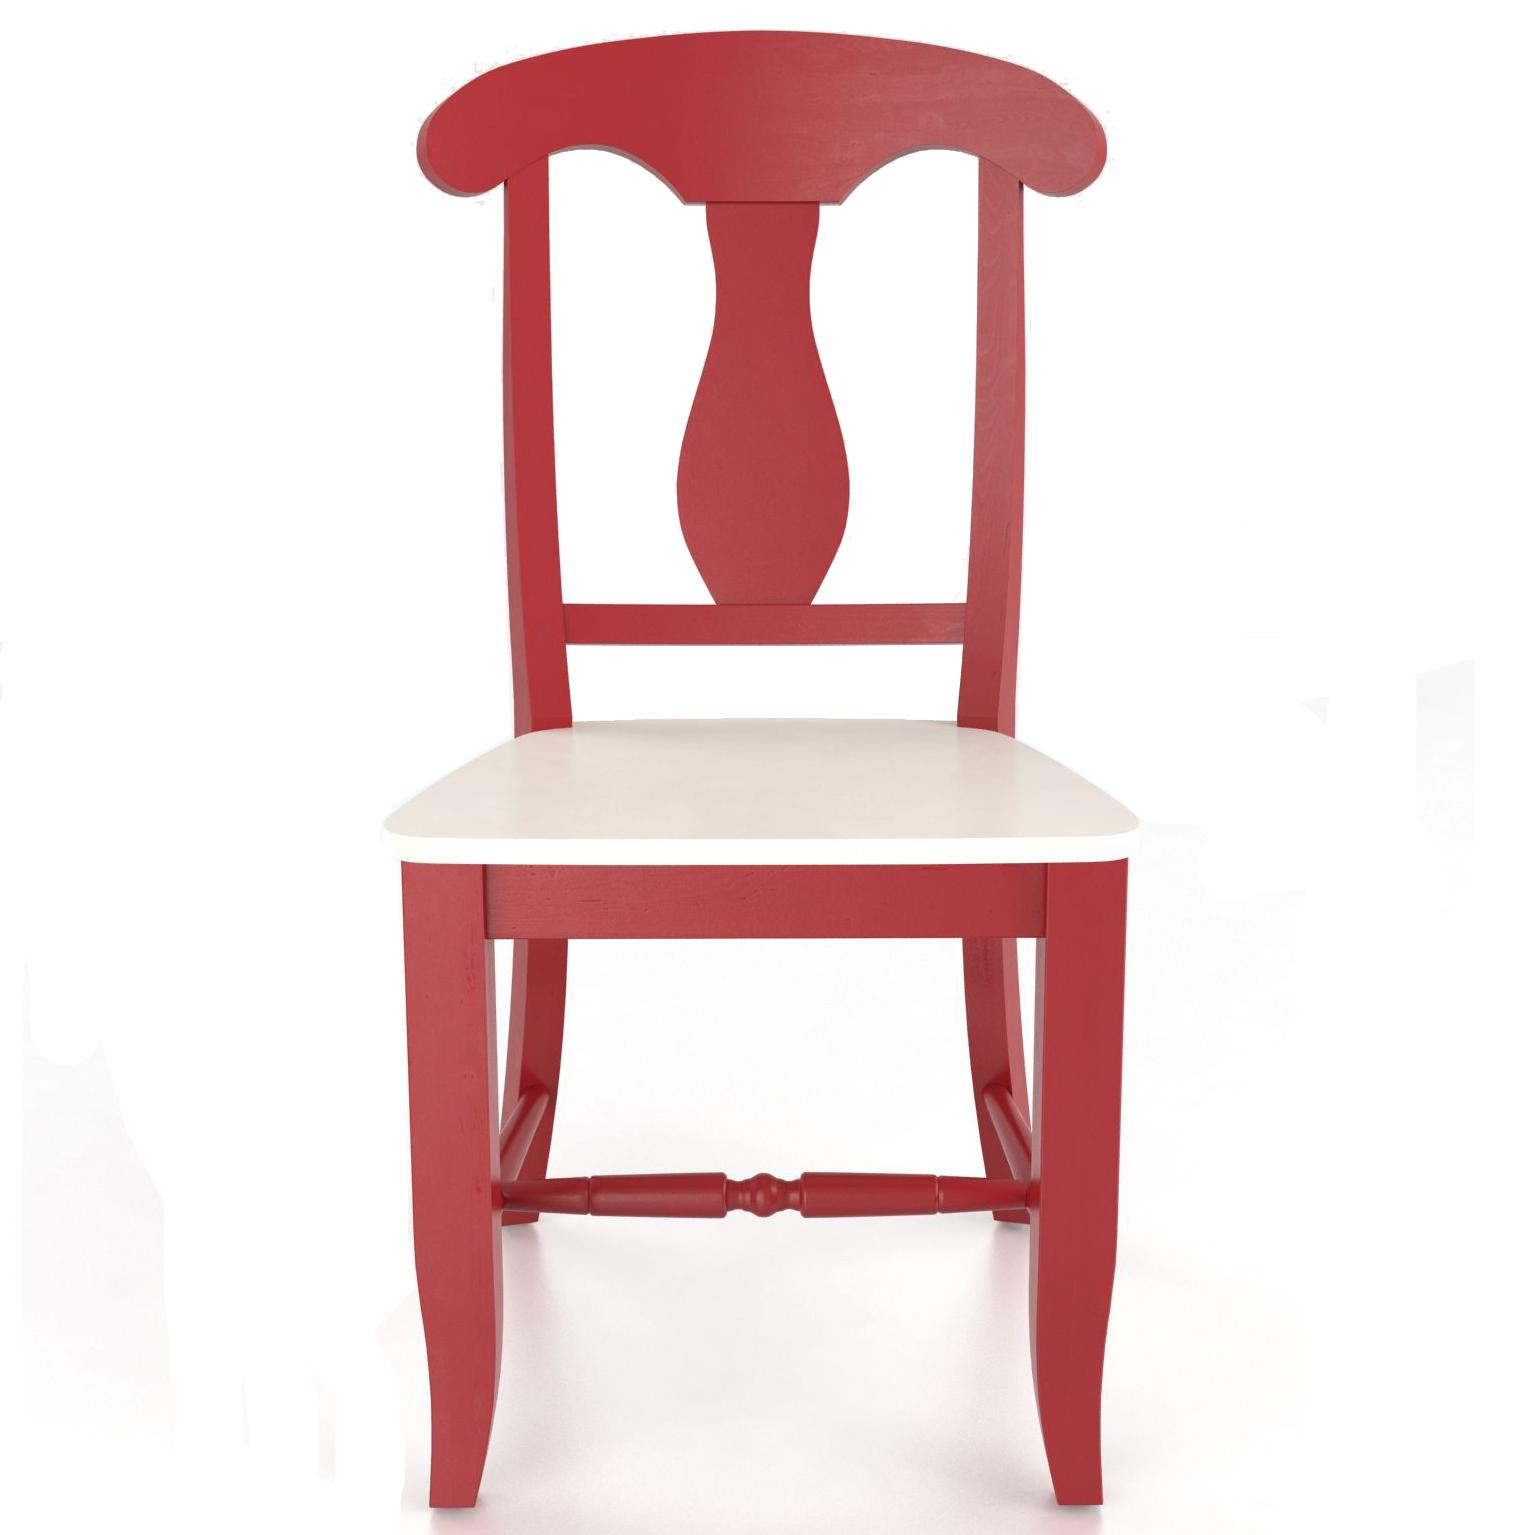 Superb img of  Side Chair Wood Seat Gill Brothers Furniture Dining Side Chair with #963538 color and 1535x1535 pixels